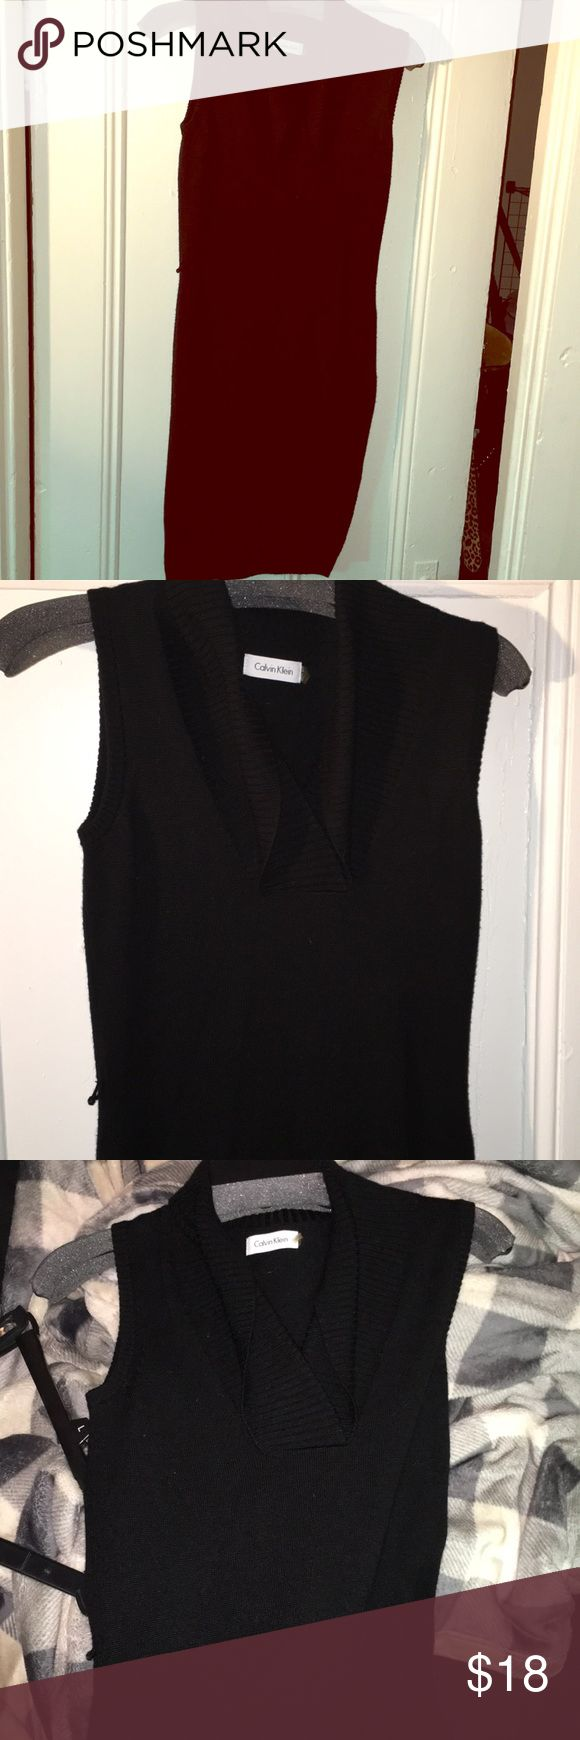 Black Calvin Klein Size XS Cowl Neck Sweater Dress Missing the belt but can easily find one to match that's cute on Amazon or something! XS but runs big. Very warm and comfortable for winter. Can wear a long sleeve shirt underneath. Still in excellent condition. Comes from a smoke free pet free home, feel free to make an offer 🙃 Calvin Klein Dresses